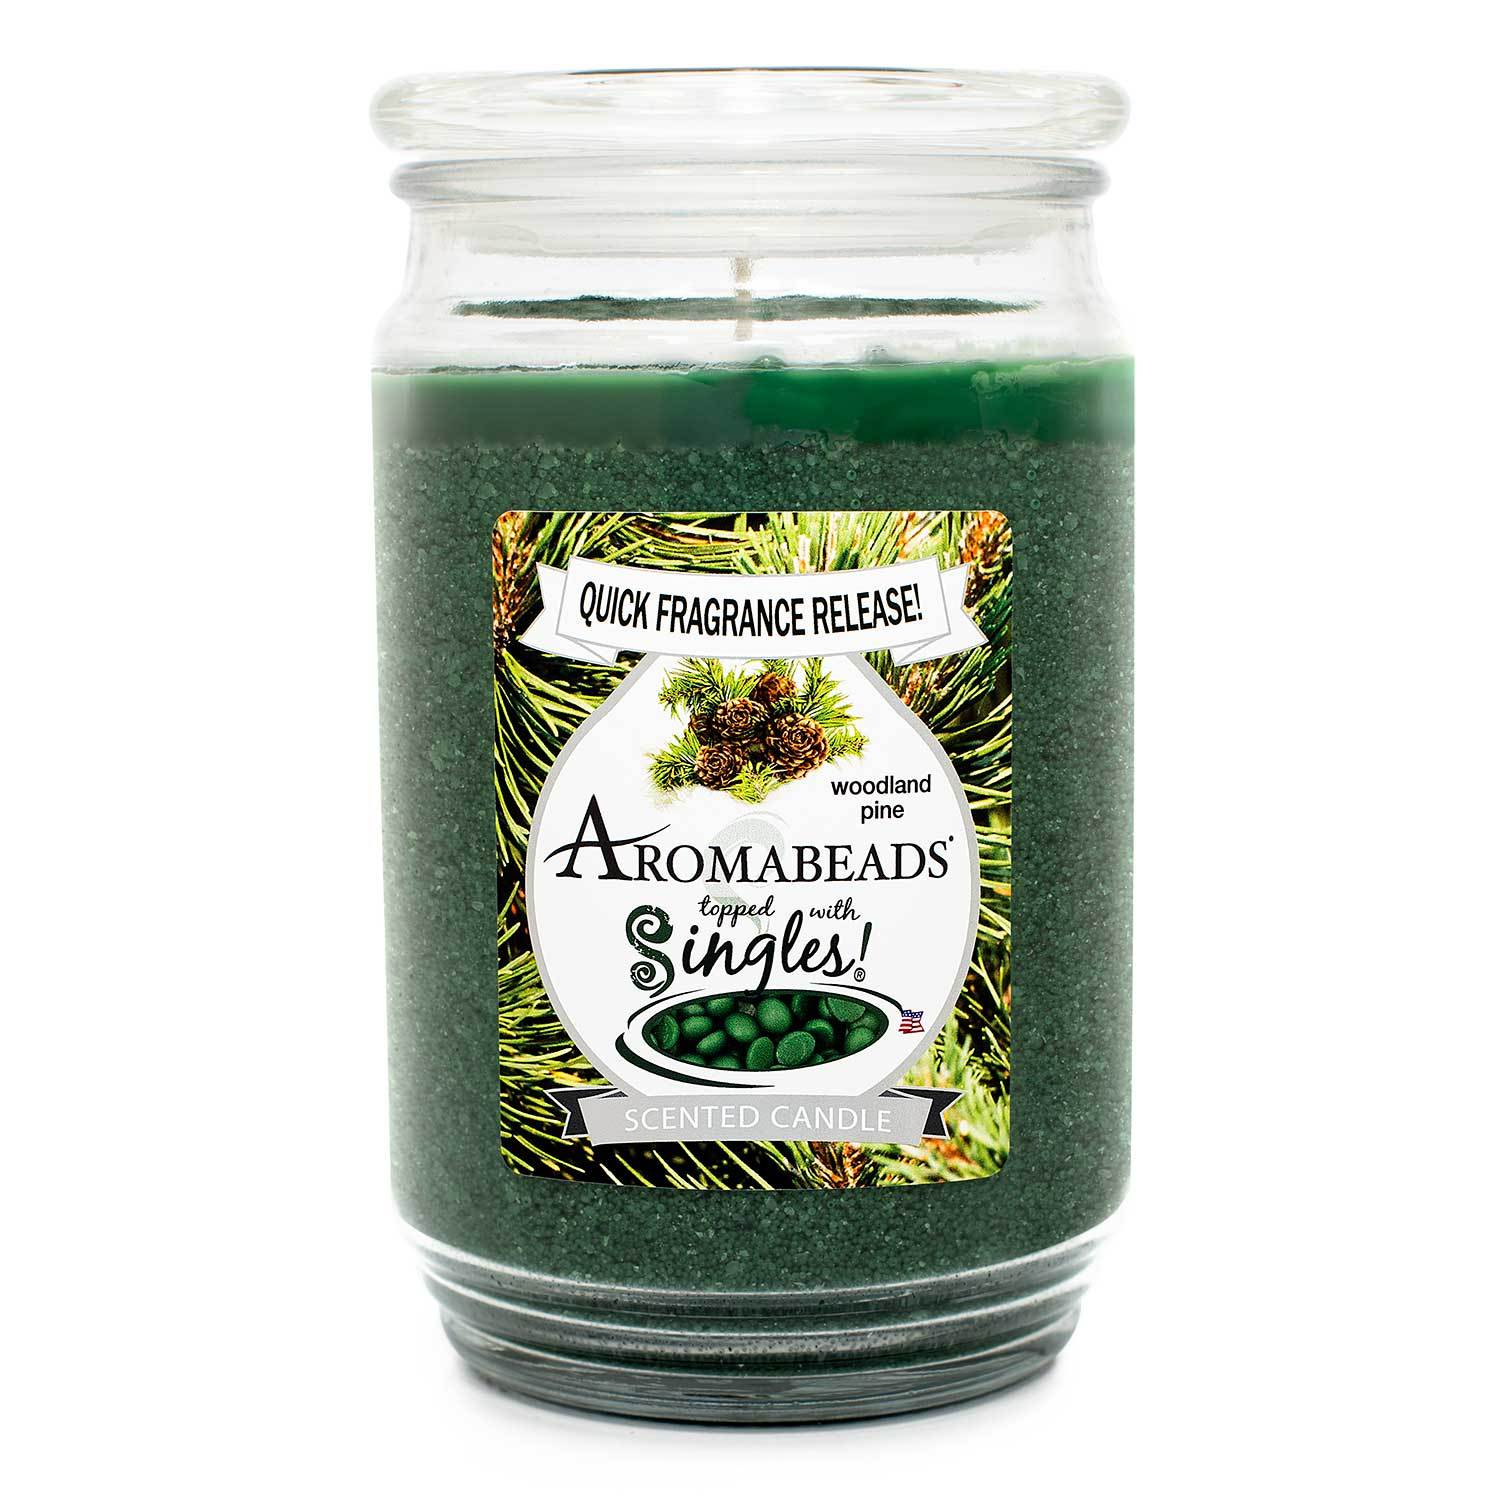 Aromabeads Woodland Pine Scented Candle